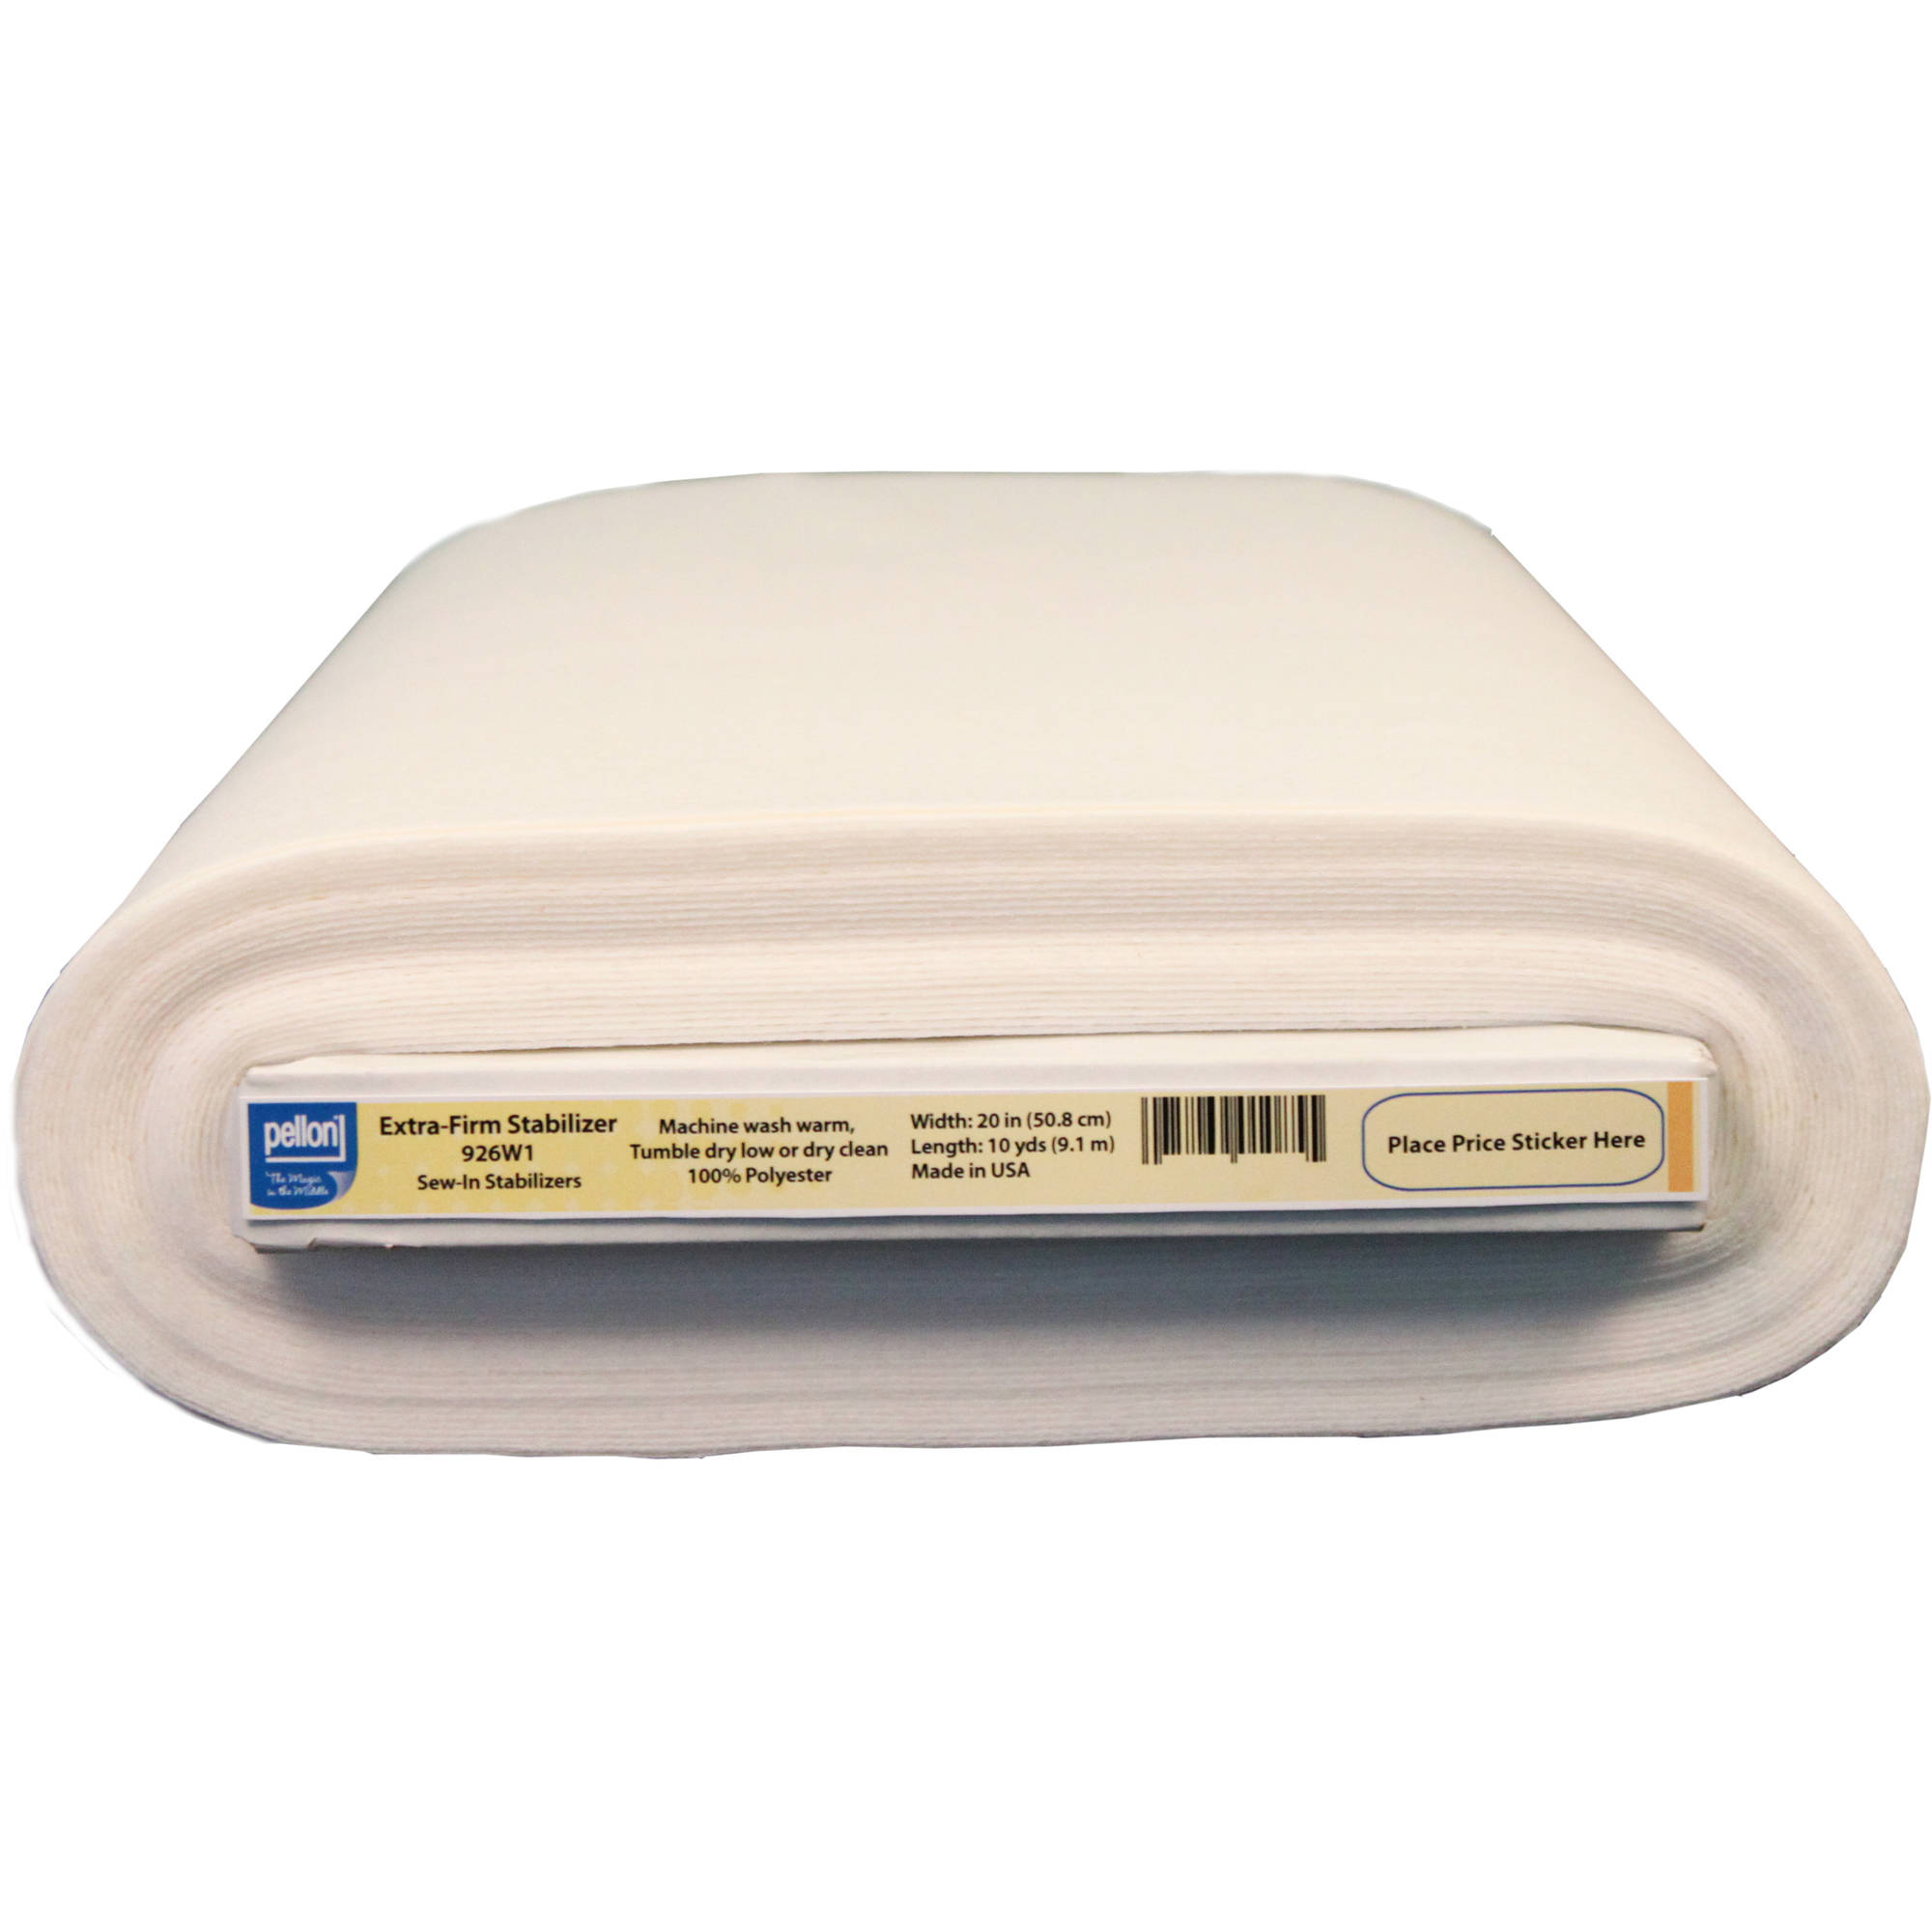 "Pellon Extra Firm Sew-In Stabilizer, 20"" x 10 Yards"